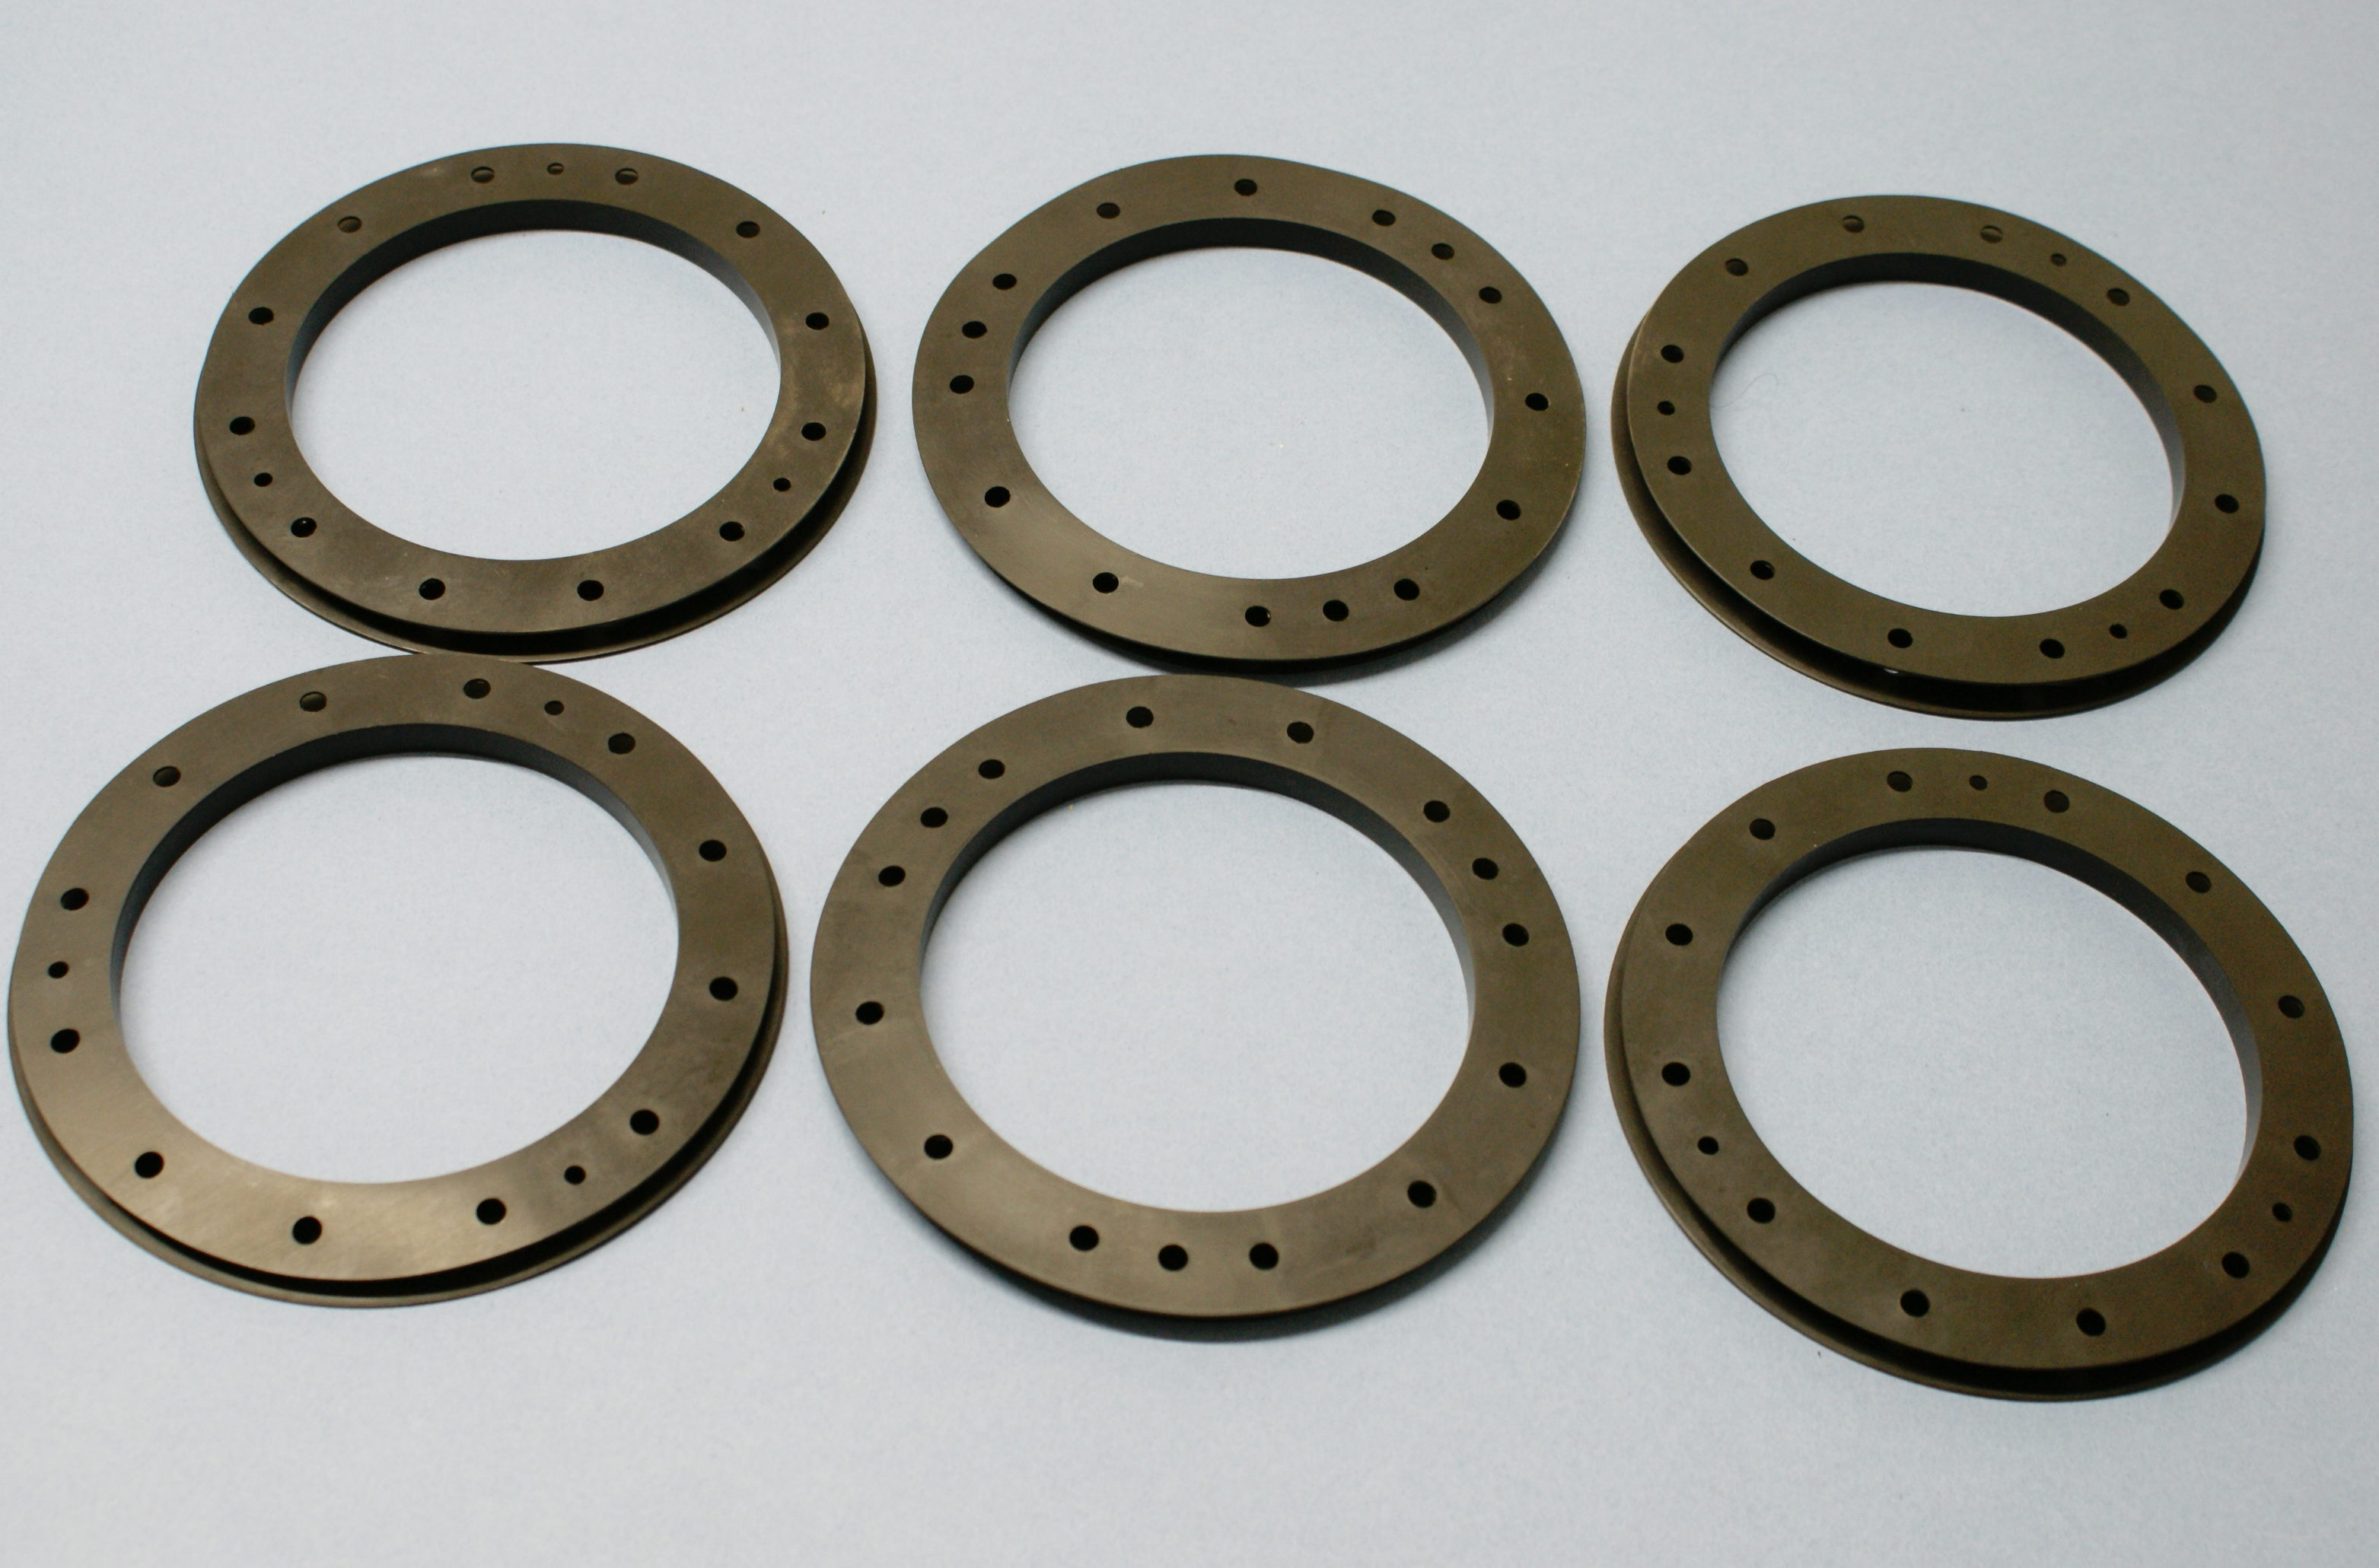 Custom Rubber Gaskets - Gasket Manufacturer UK | Butser